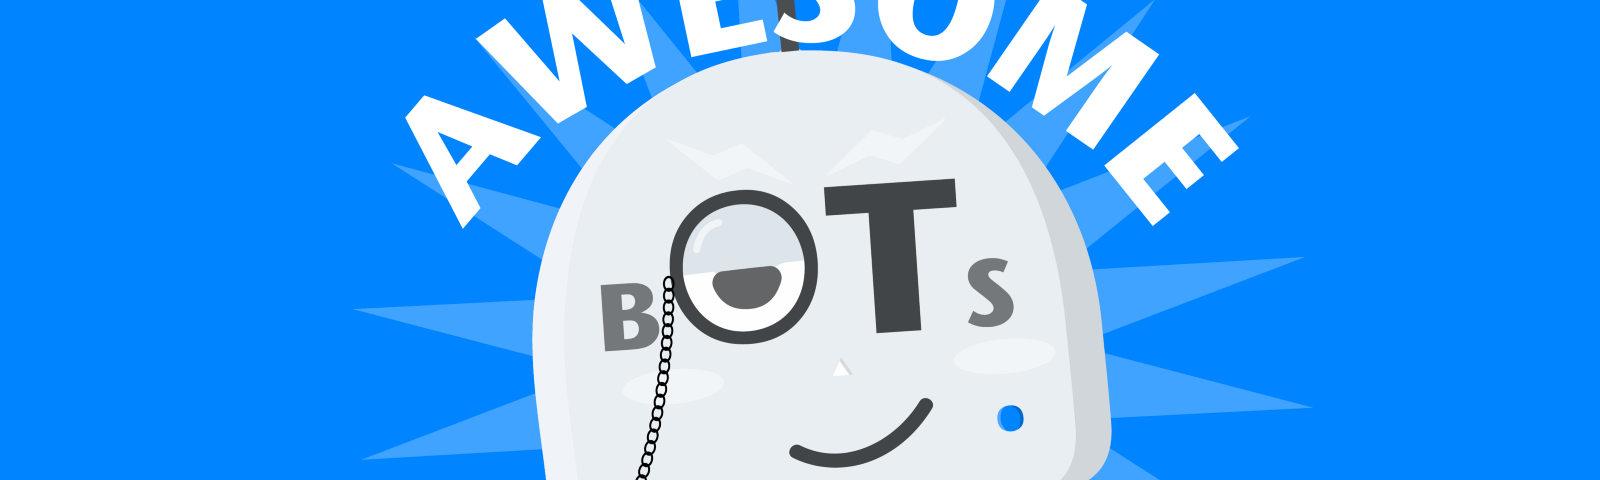 All stories published by Chatbots Magazine on April 04, 2017